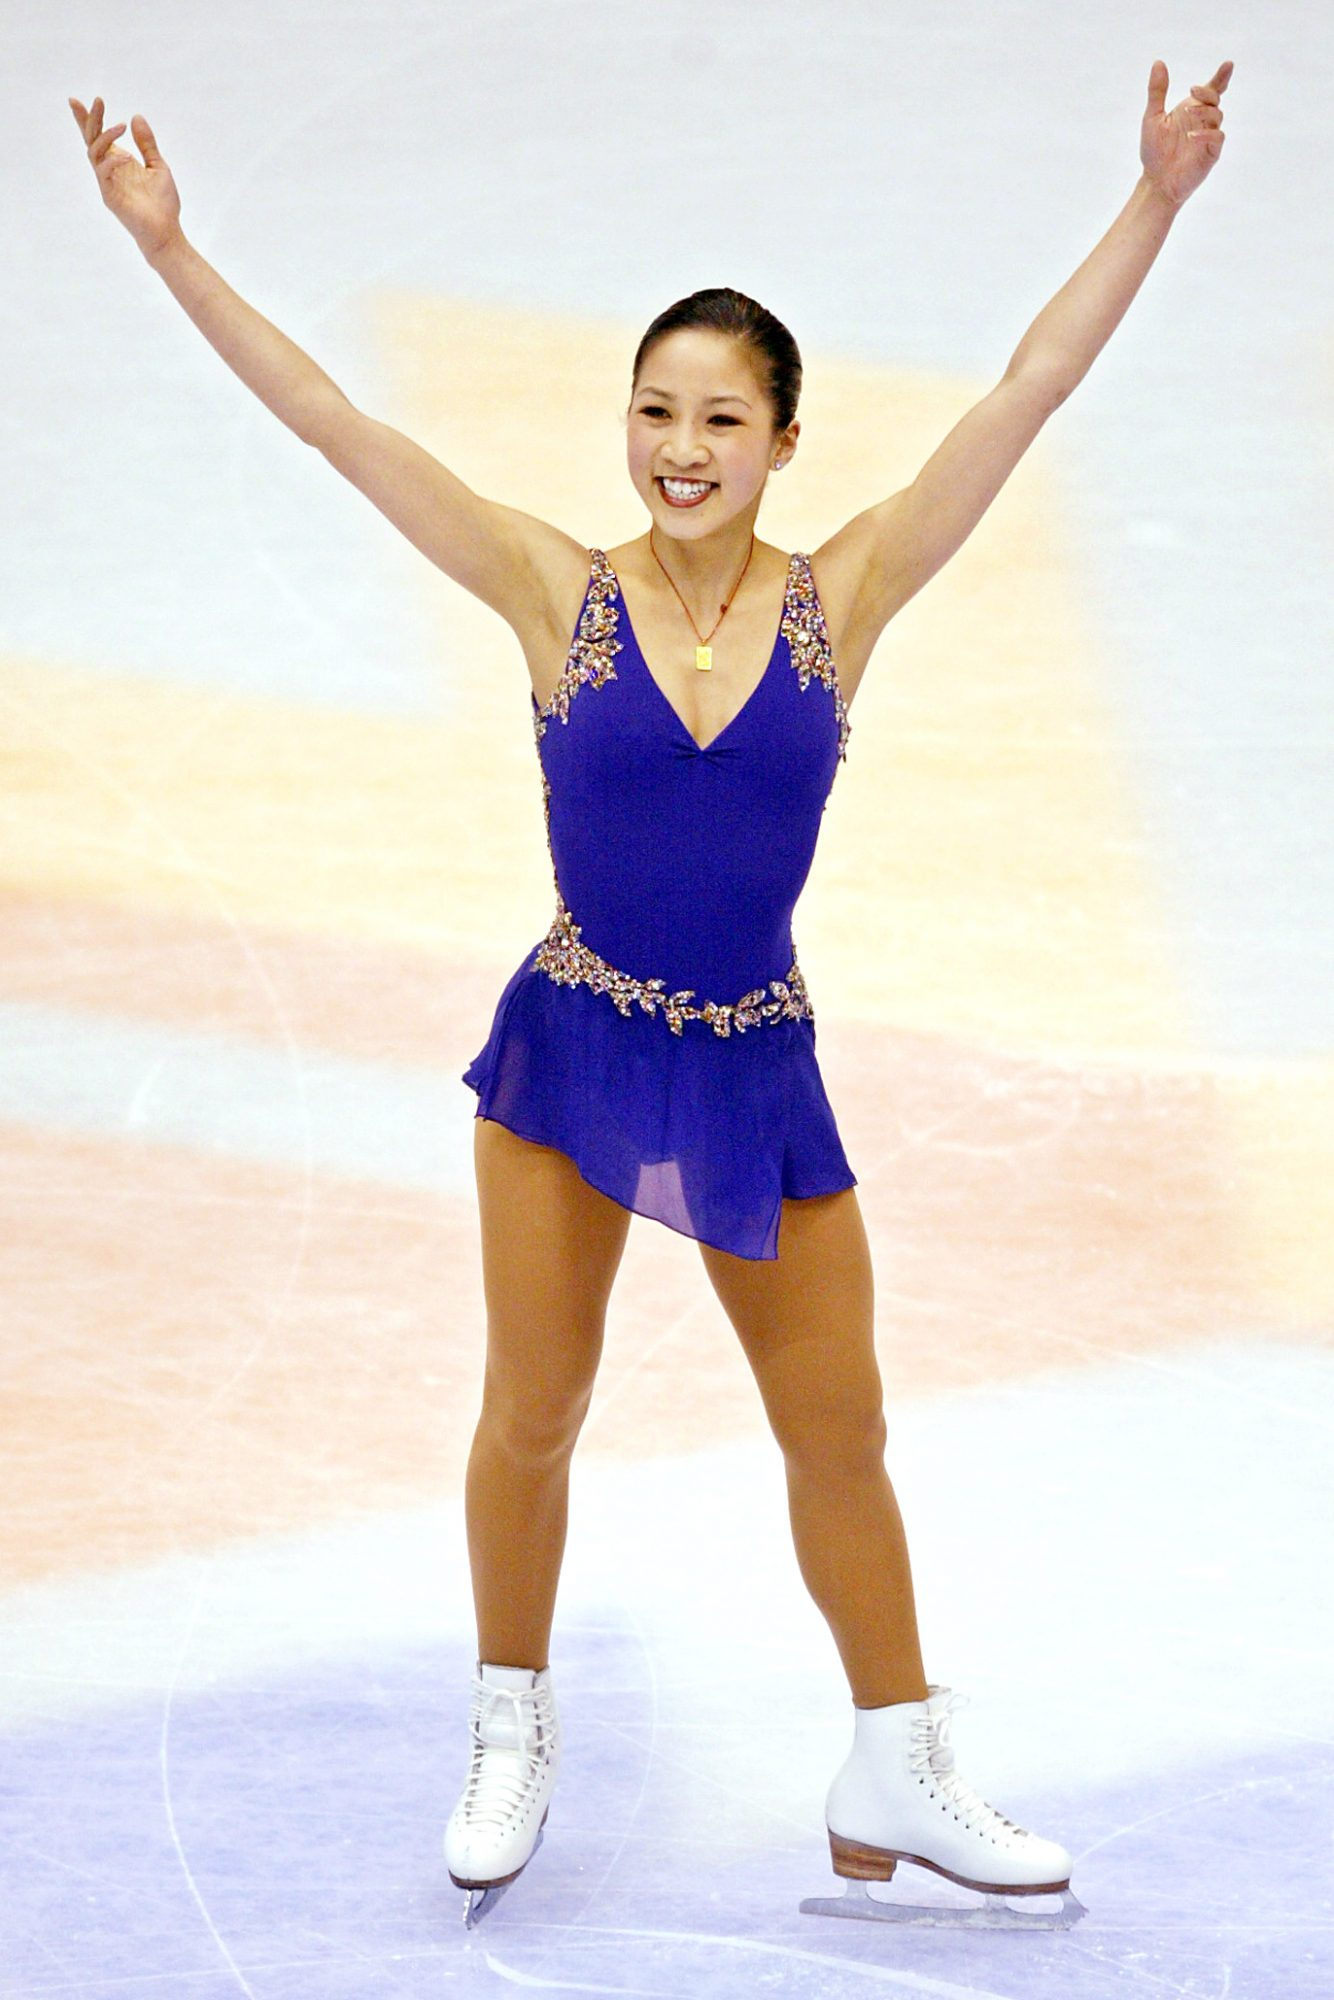 A Comprehensive List of the Best Figure Skaters of All Time